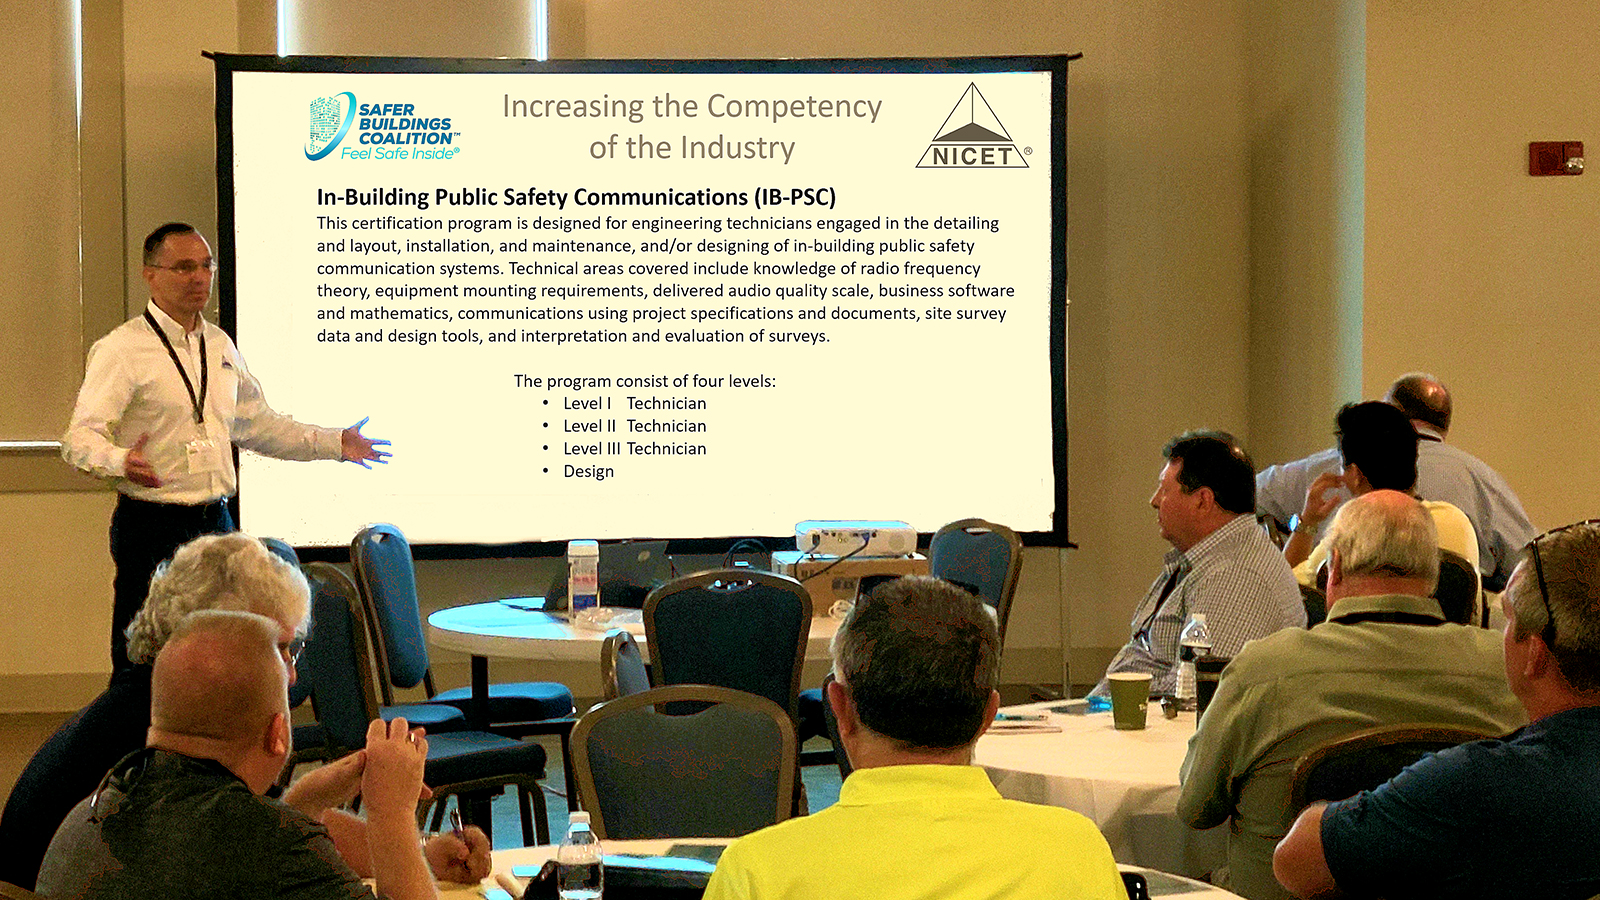 Chip Hollis, Senior Director, Credentials and Administration for the National Institute for Certification in Engineering Technologies (NICET), announces the availability of the first NICET Certification Test for the IB-PSC program, in collaboration with the Safer Buildings Coalition (SBC).